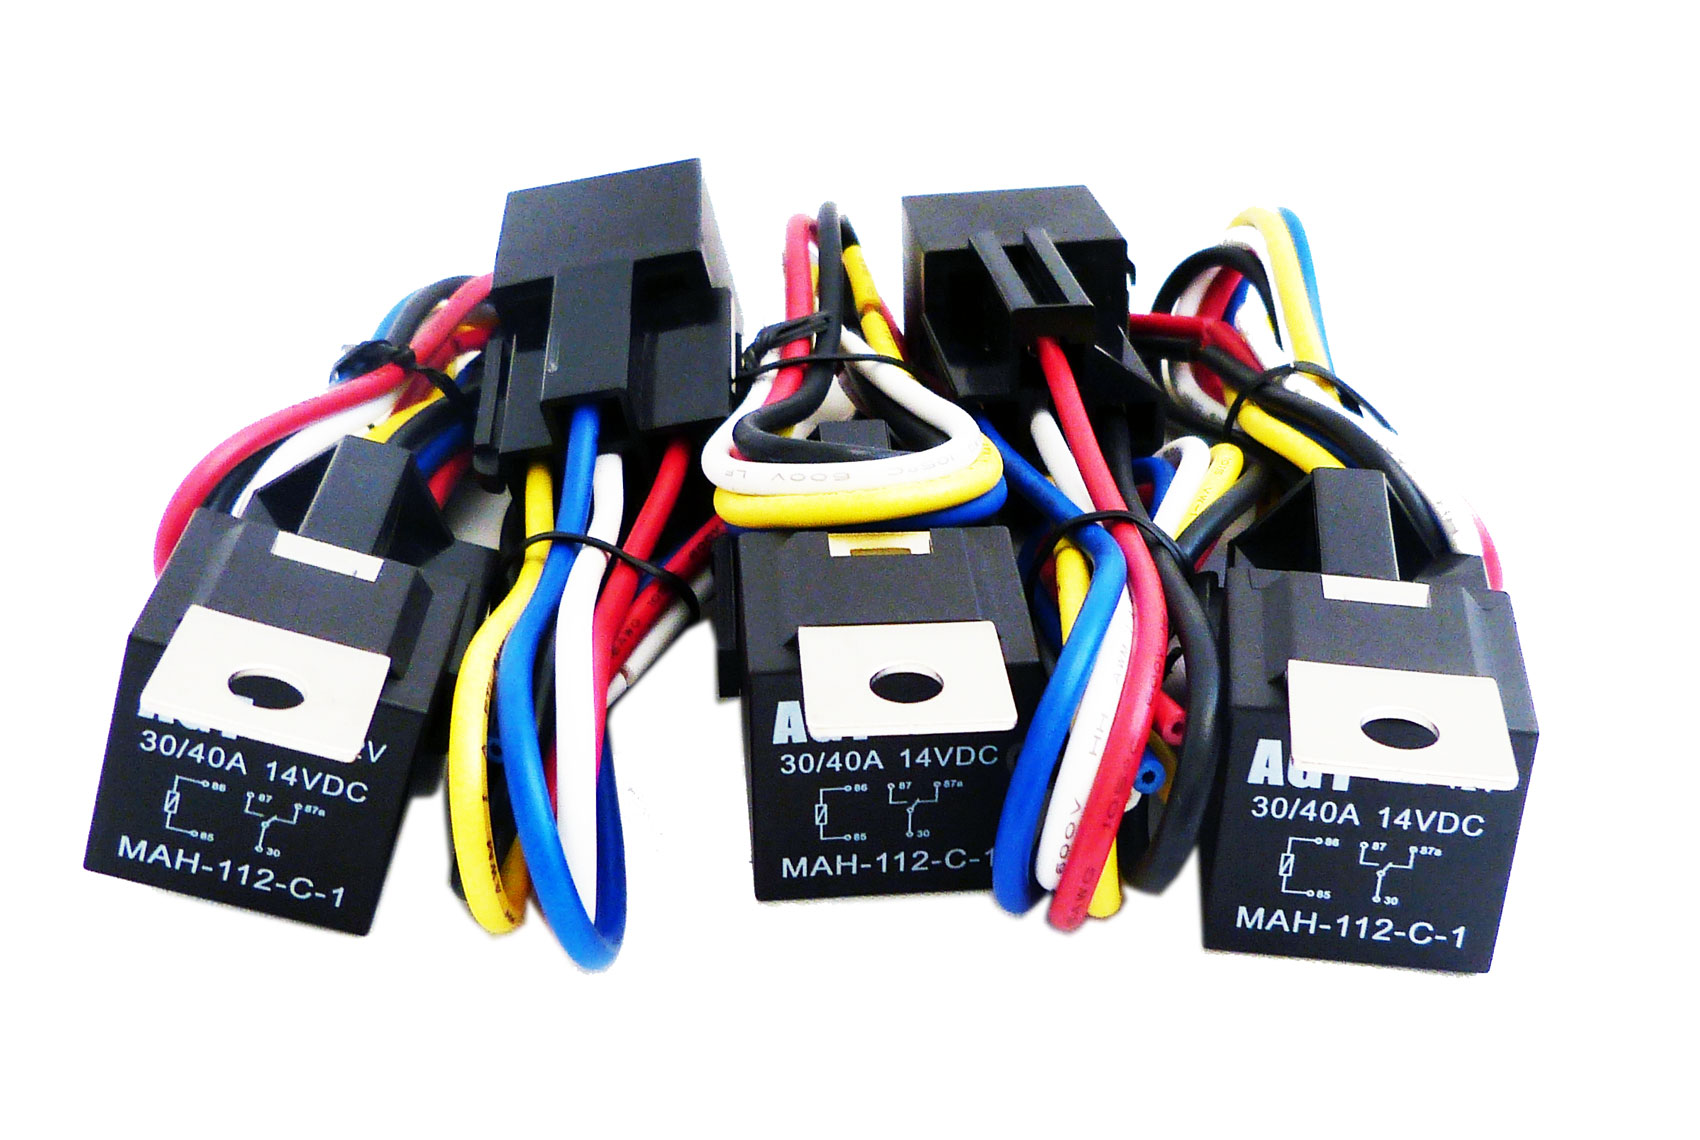 30/40 amp spdt automotive relays & 5-wire relay sockets